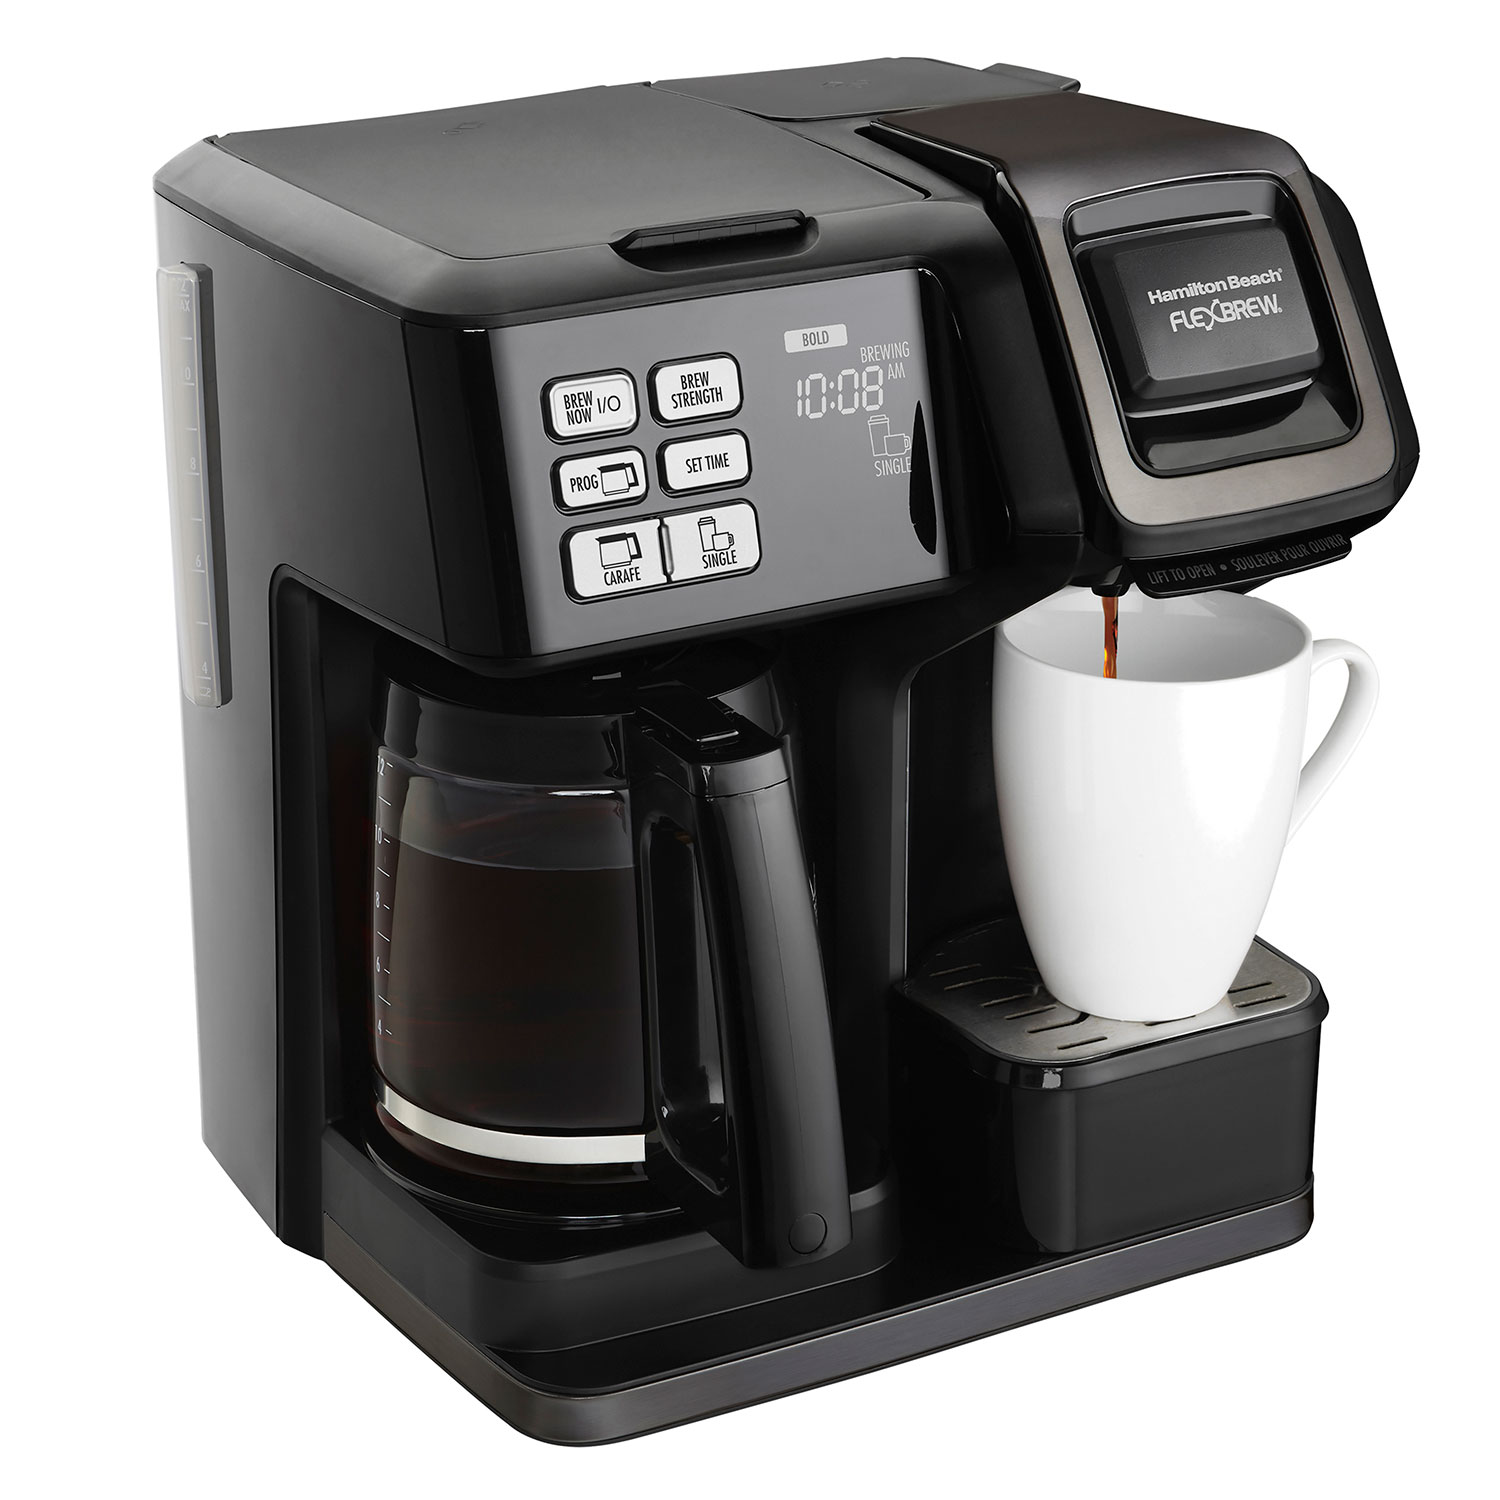 FlexBrew® 2-Way Coffee Maker (Black Stainless) (49958)